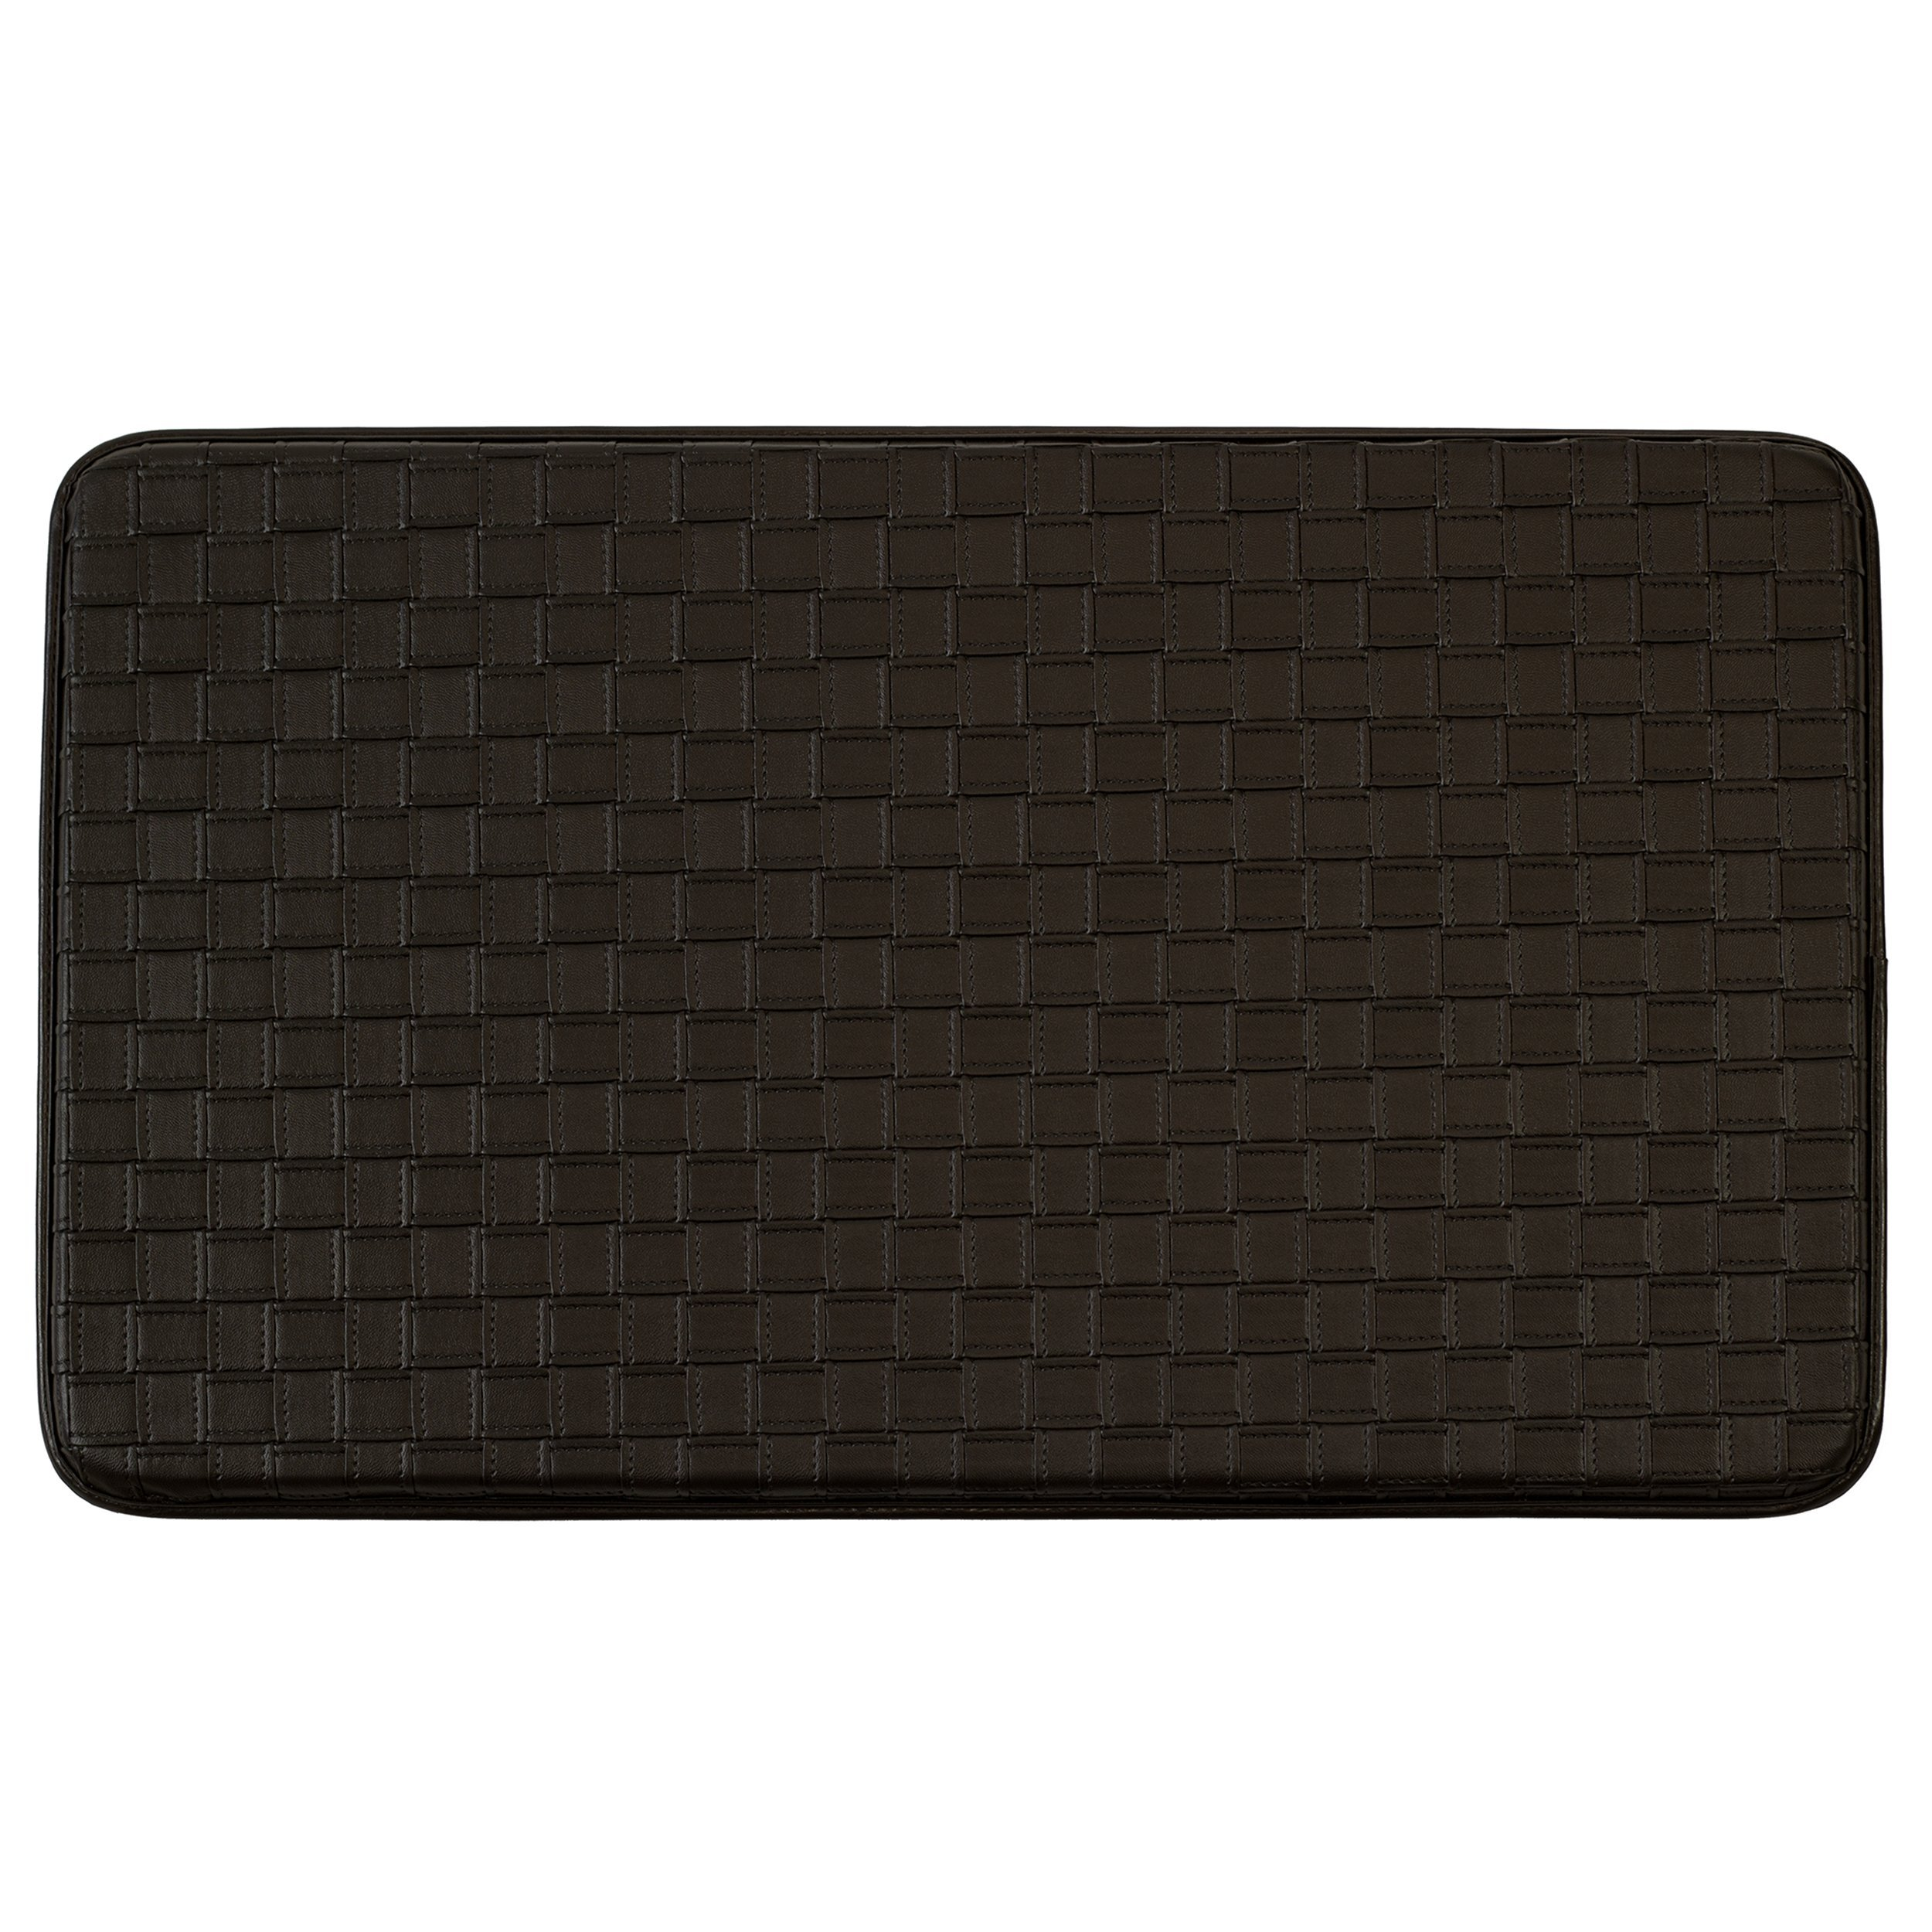 Chef Gear Faux-Leather Basket Weave 18 x 30 in. Comfort Chef Mat, Chocolate